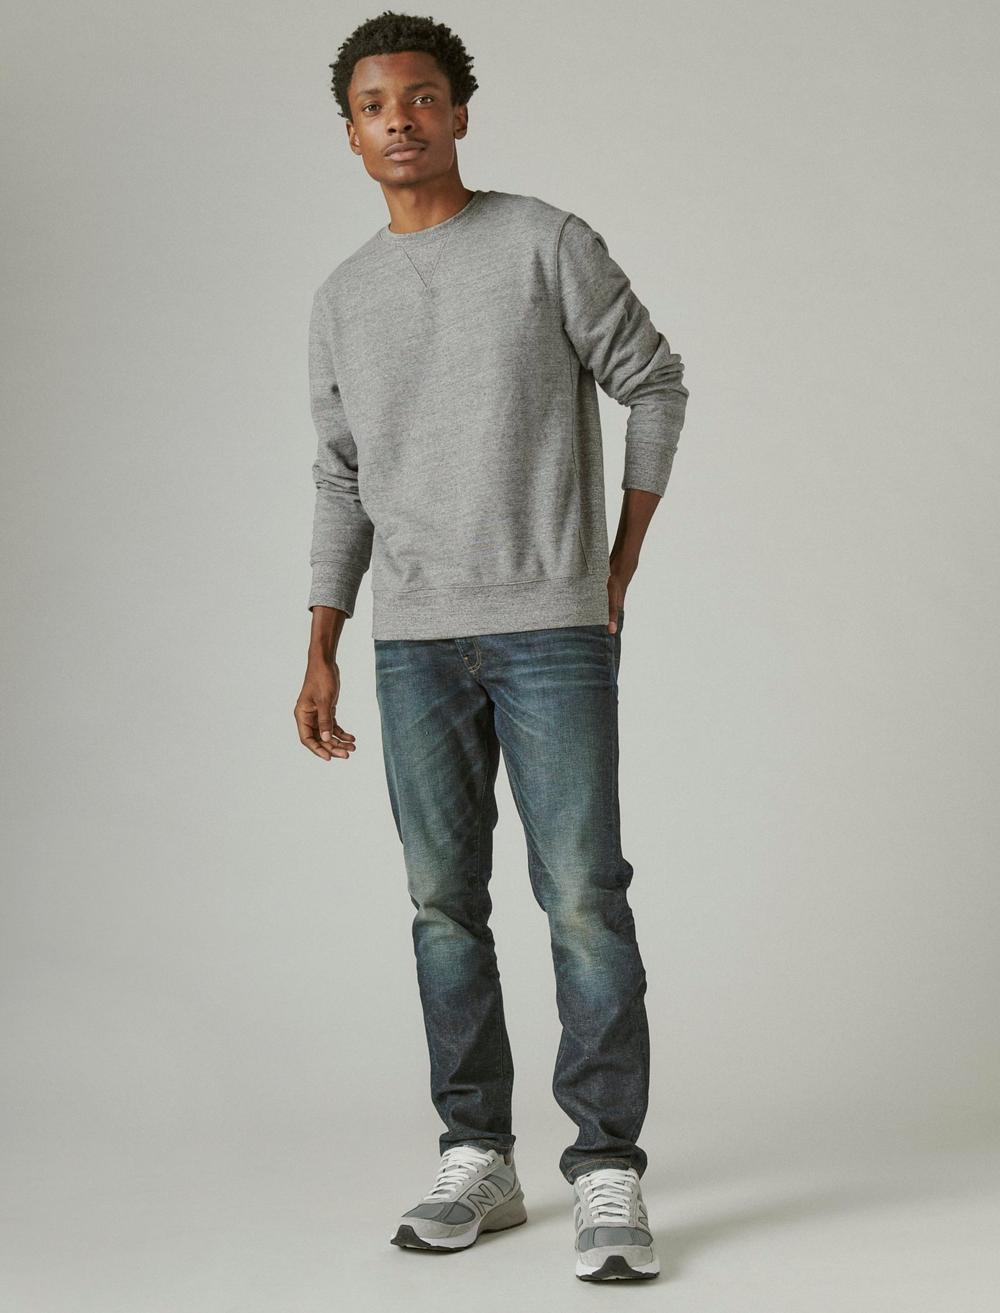 SUEDED FRENCH TERRY CREW SWEATSHIRT, image 2